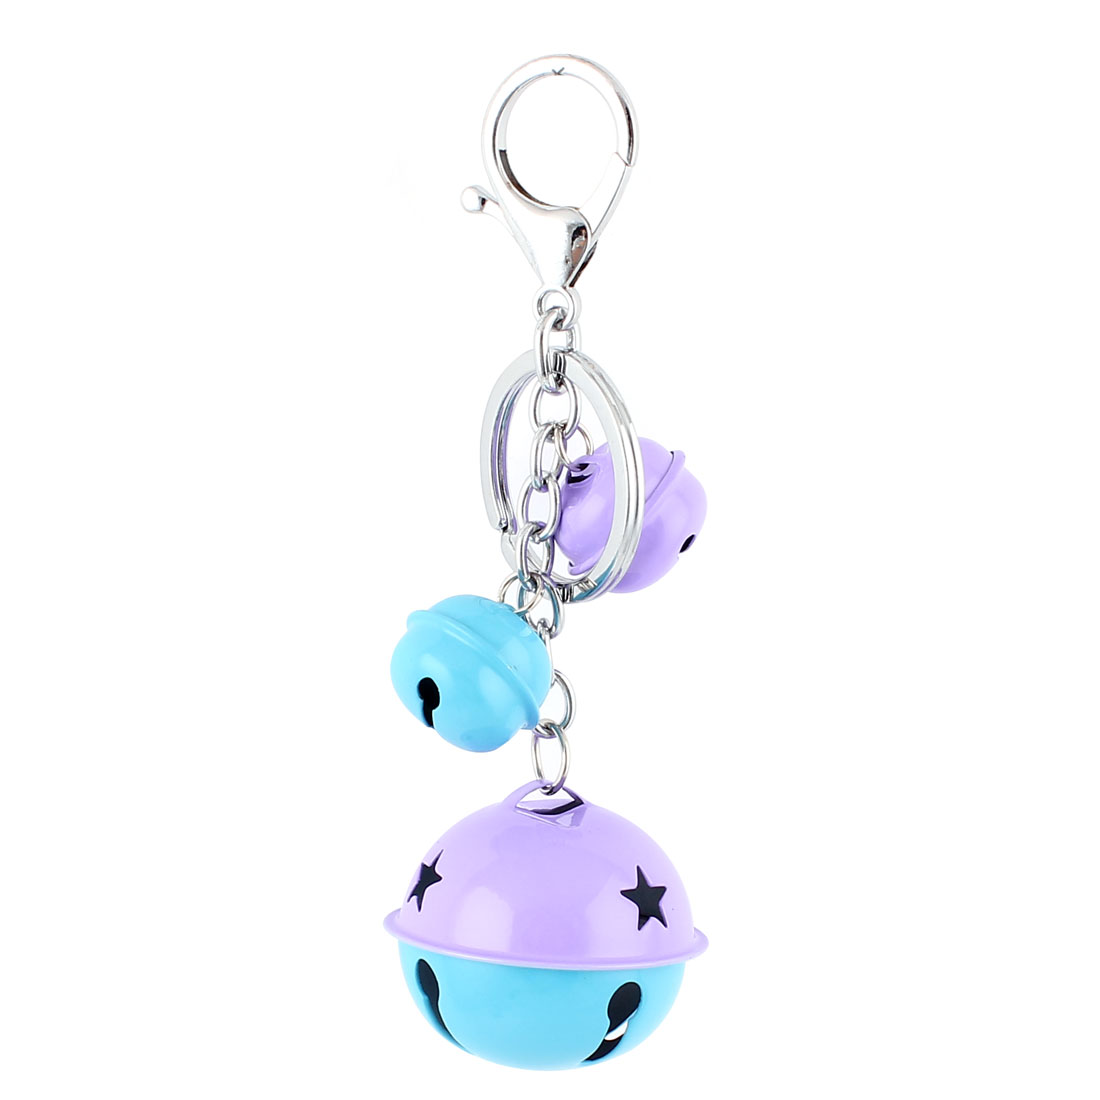 Bells Pendant Lobster Clasp Split Keyring Keychain Hanging Ornament Cyan Purple